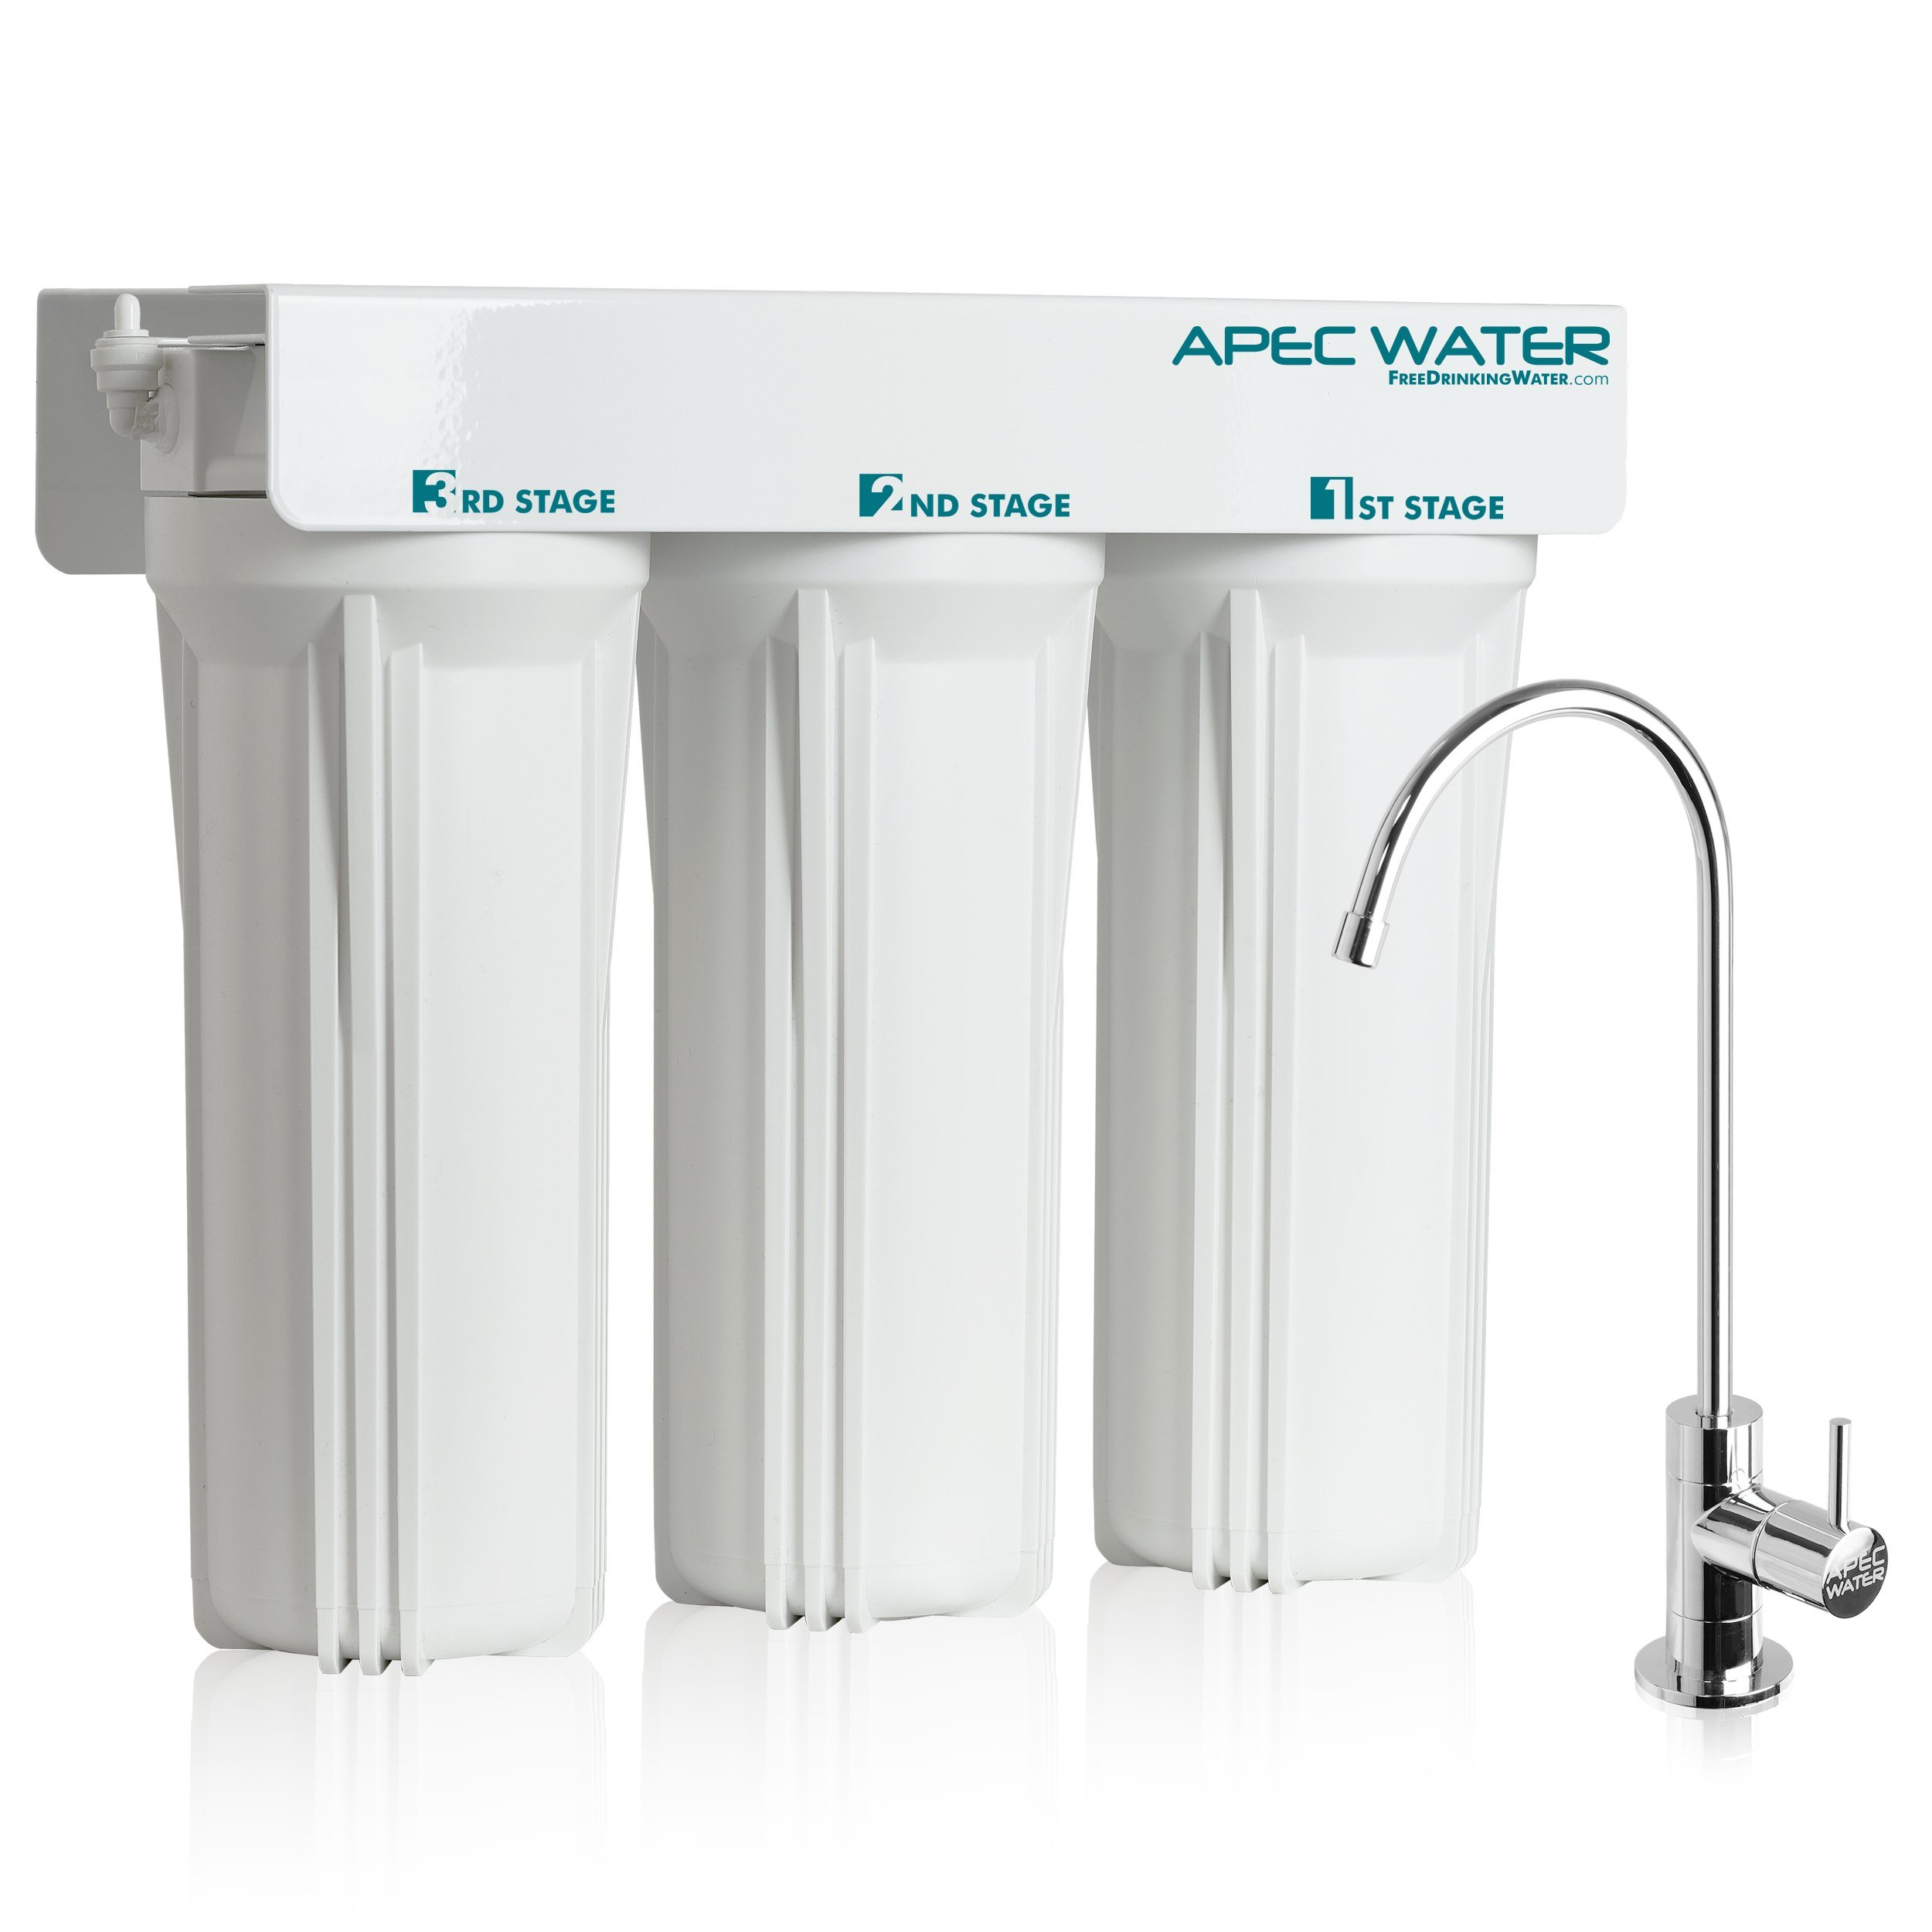 APEC WFS-1000 Super Capacity Premium Quality 3 Stage Under-Sink Water Filter System (Renewed) by APEC Water Systems